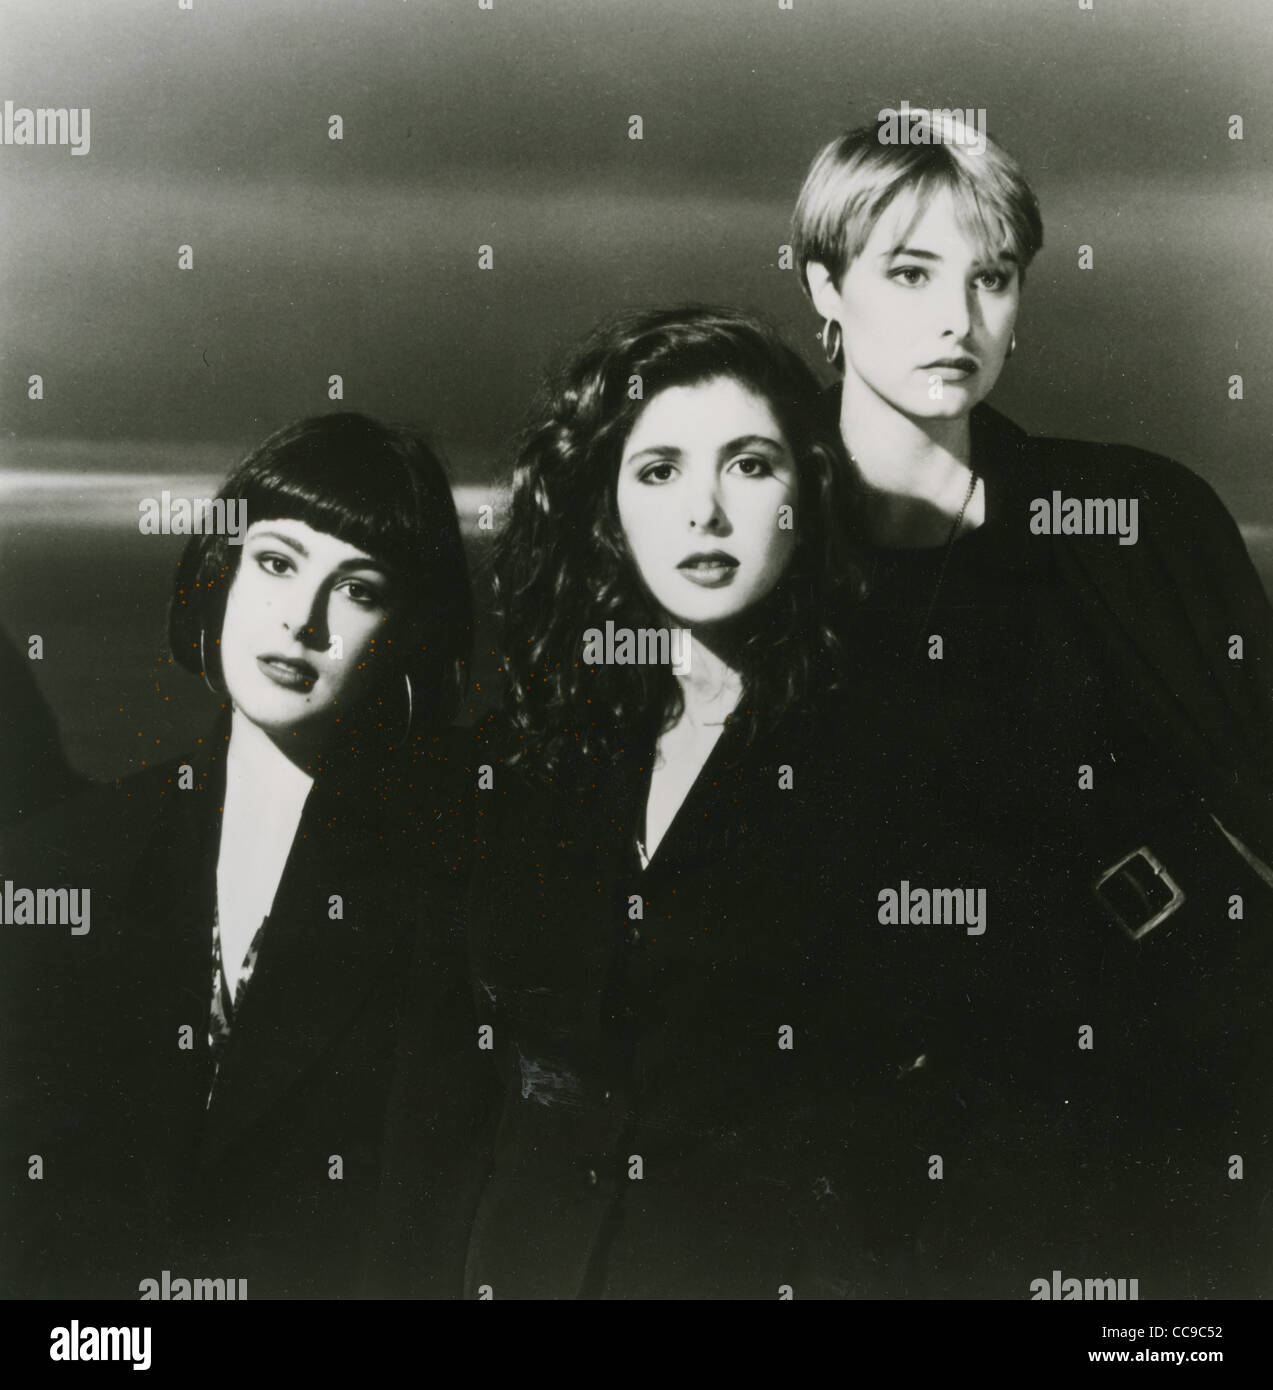 WILSON PHILLIPS Promotional photo of US vocal group about 1990 - Stock Image